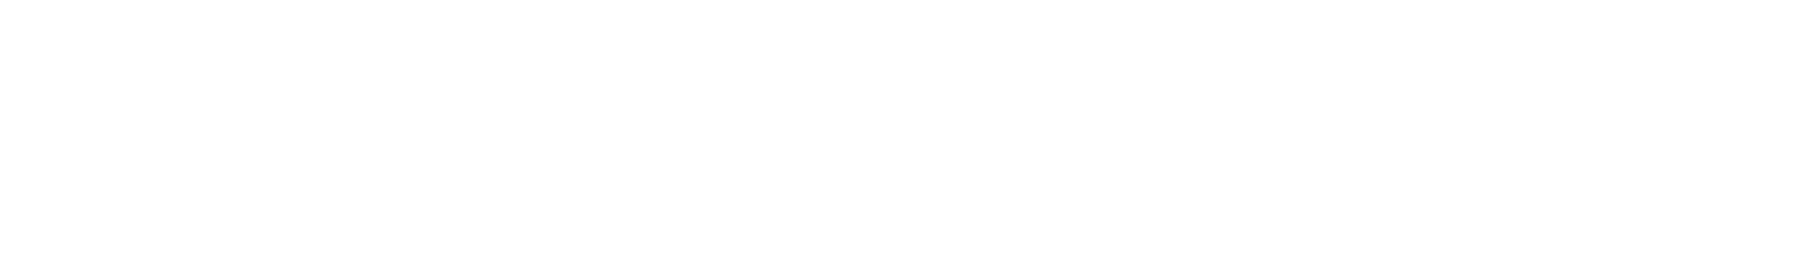 veh1 cutted sounds   131